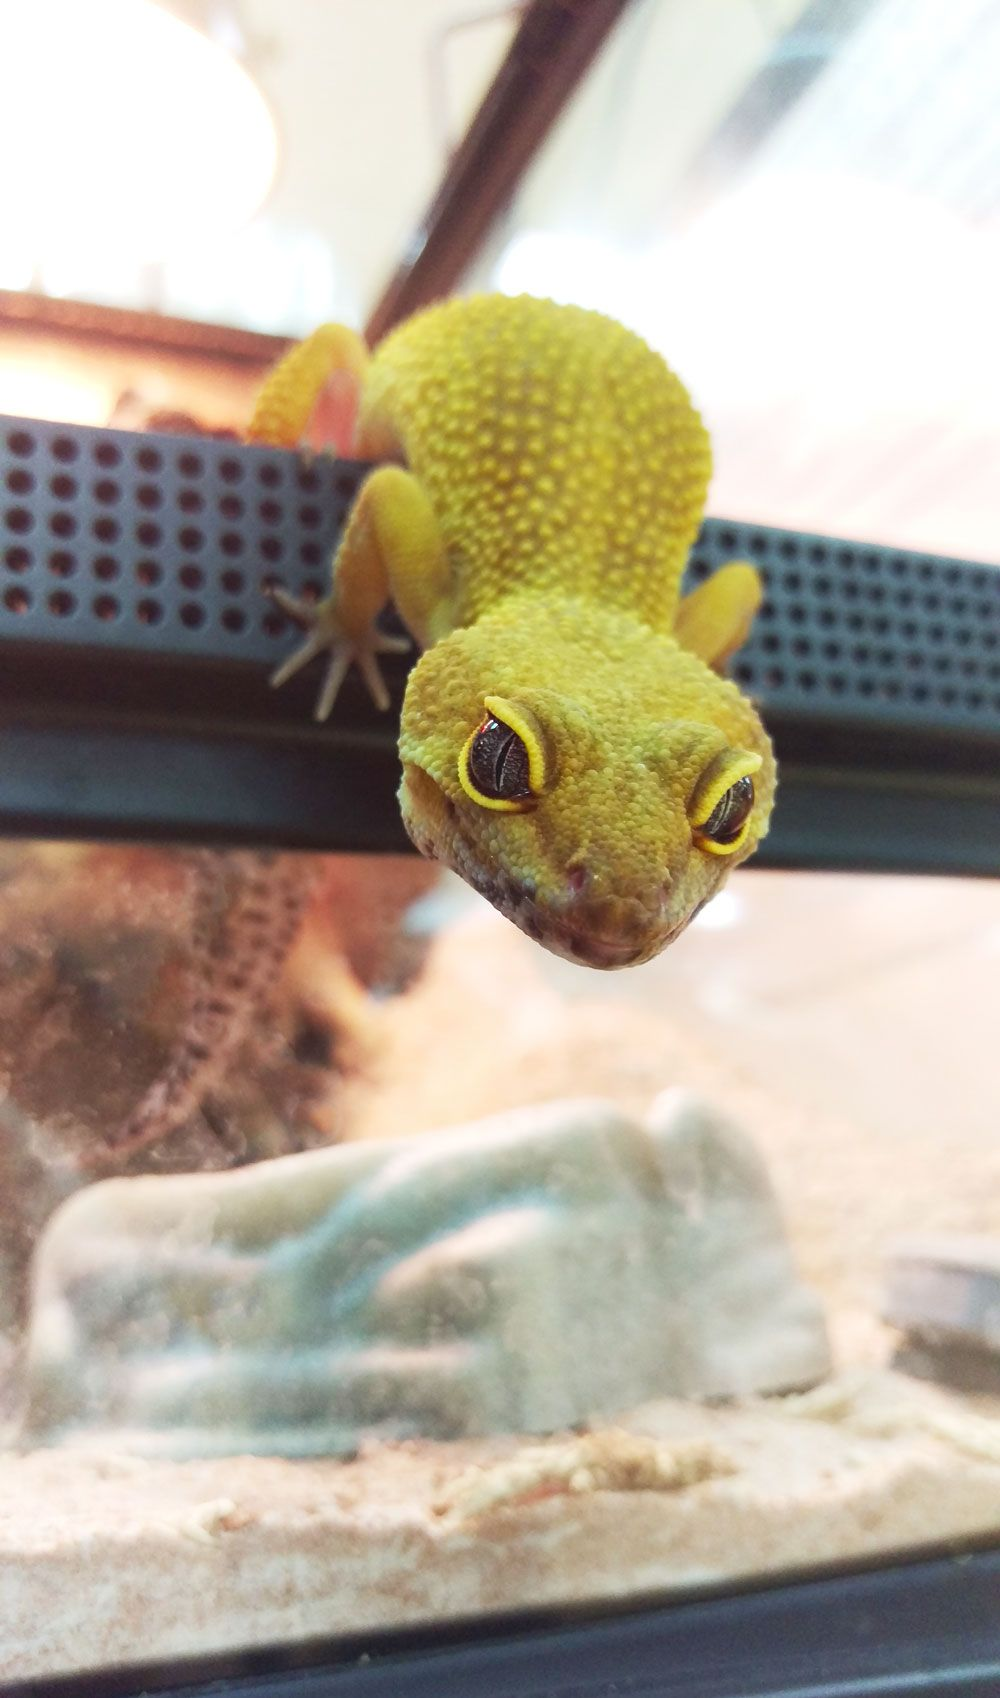 Gecko Selfie 3 Leopard Geckos Are Among The Most Popular Pet Reptiles They Stay Small Are Very Docile And Are Relat Reptiles Pet Cute Reptiles Leopard Gecko